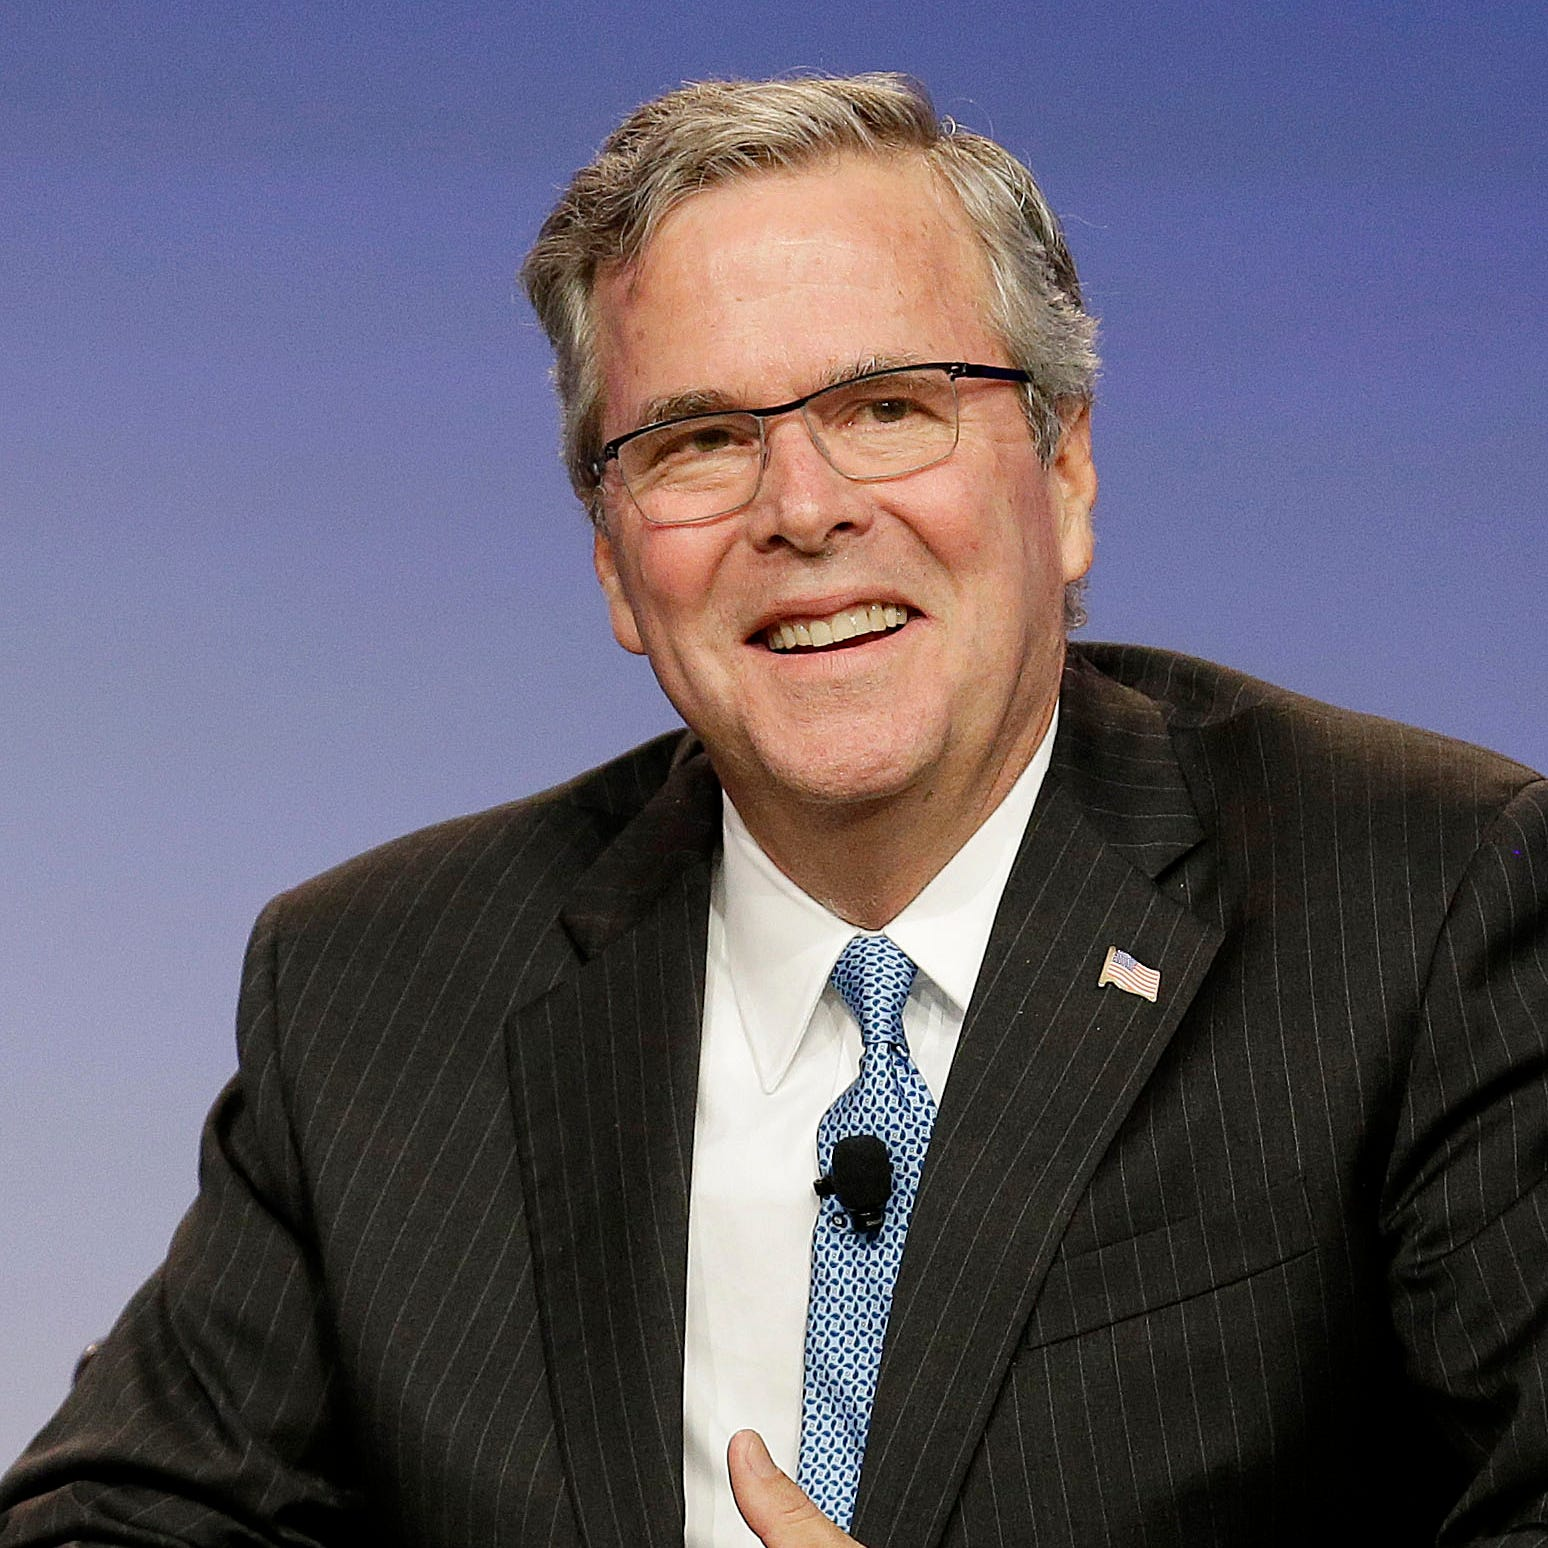 Jeb Bush gives President Donald Trump an F as role model in chief